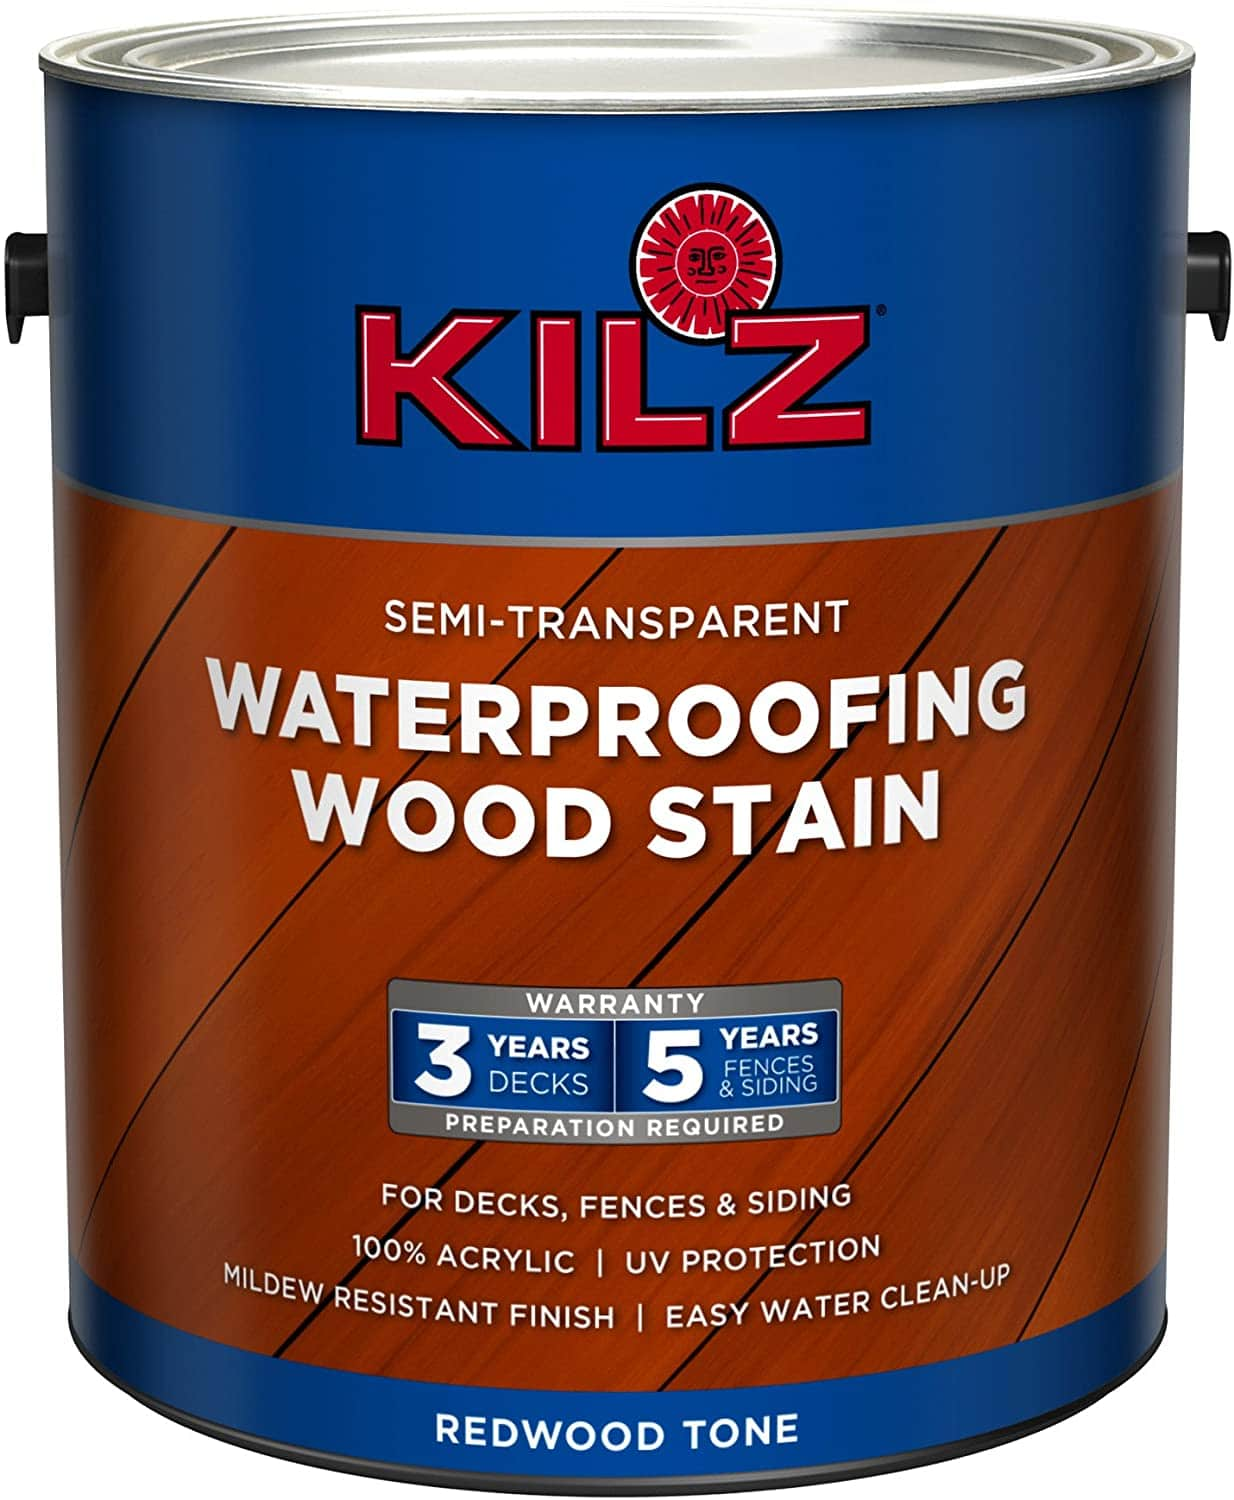 KILZ Semi-Transparent Exterior Waterproofing Wood Stain